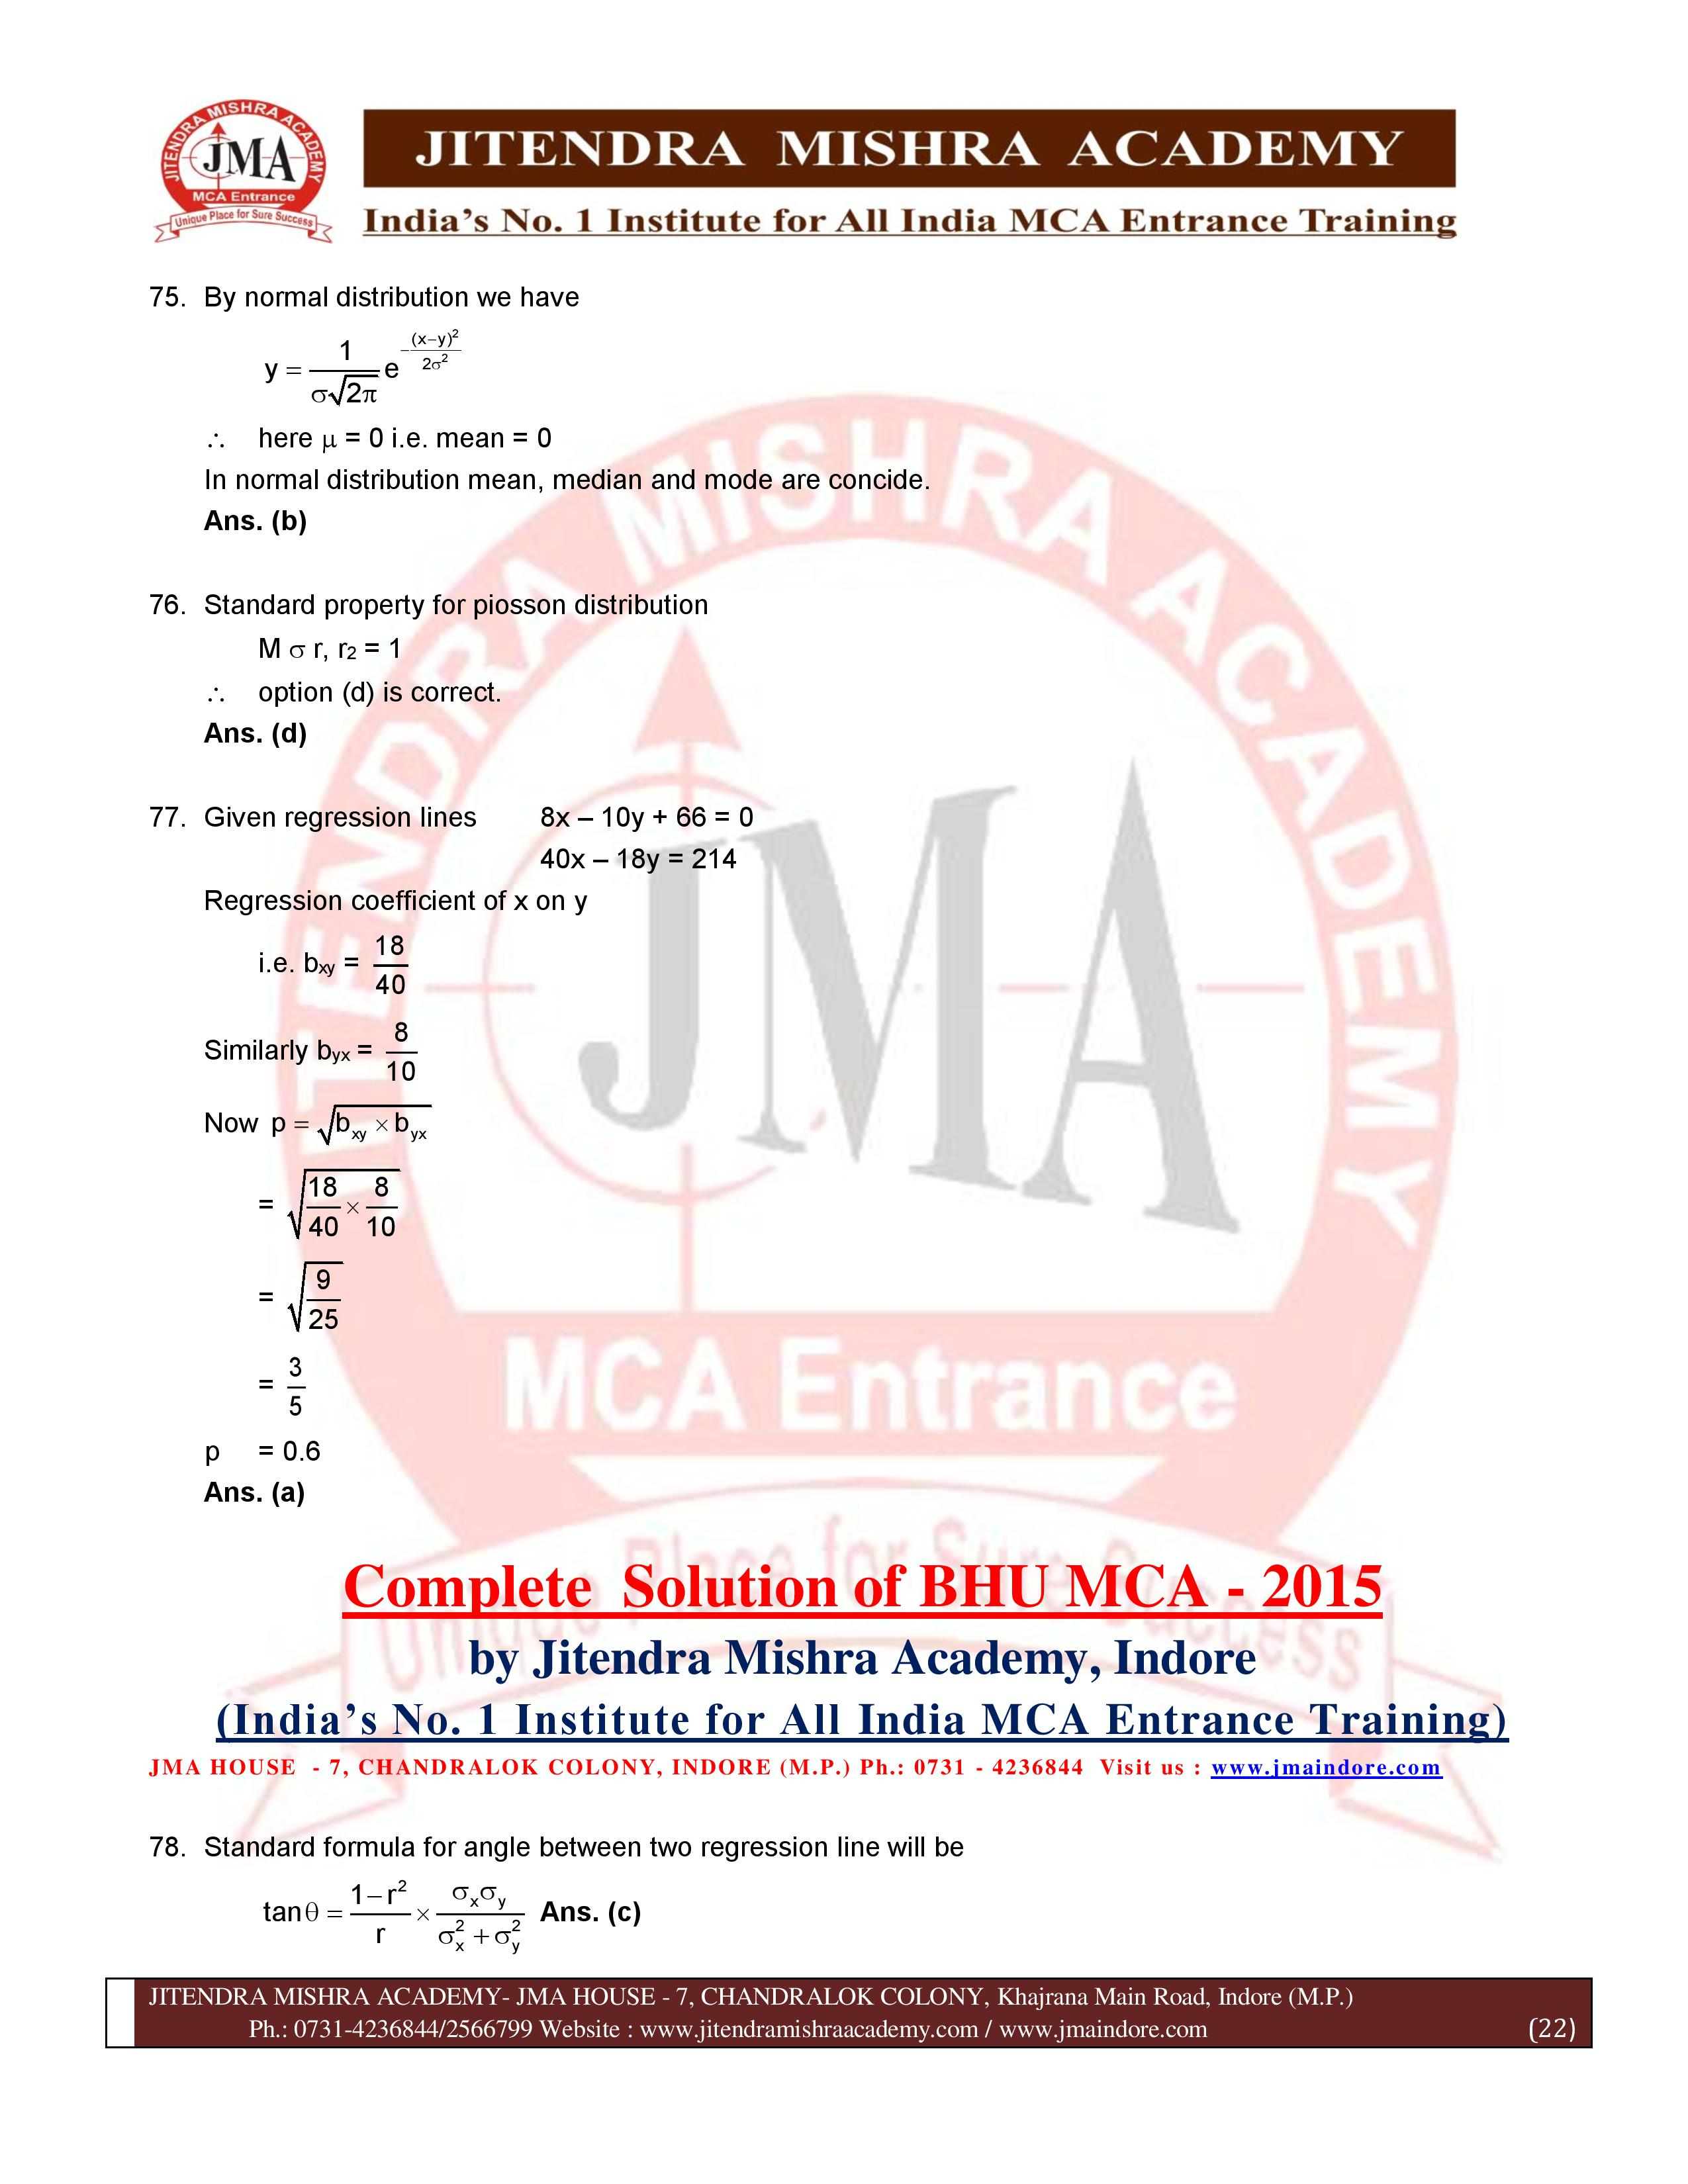 BHU 2015 SOLUTION (SET - 1) (29.06.16)-page-022